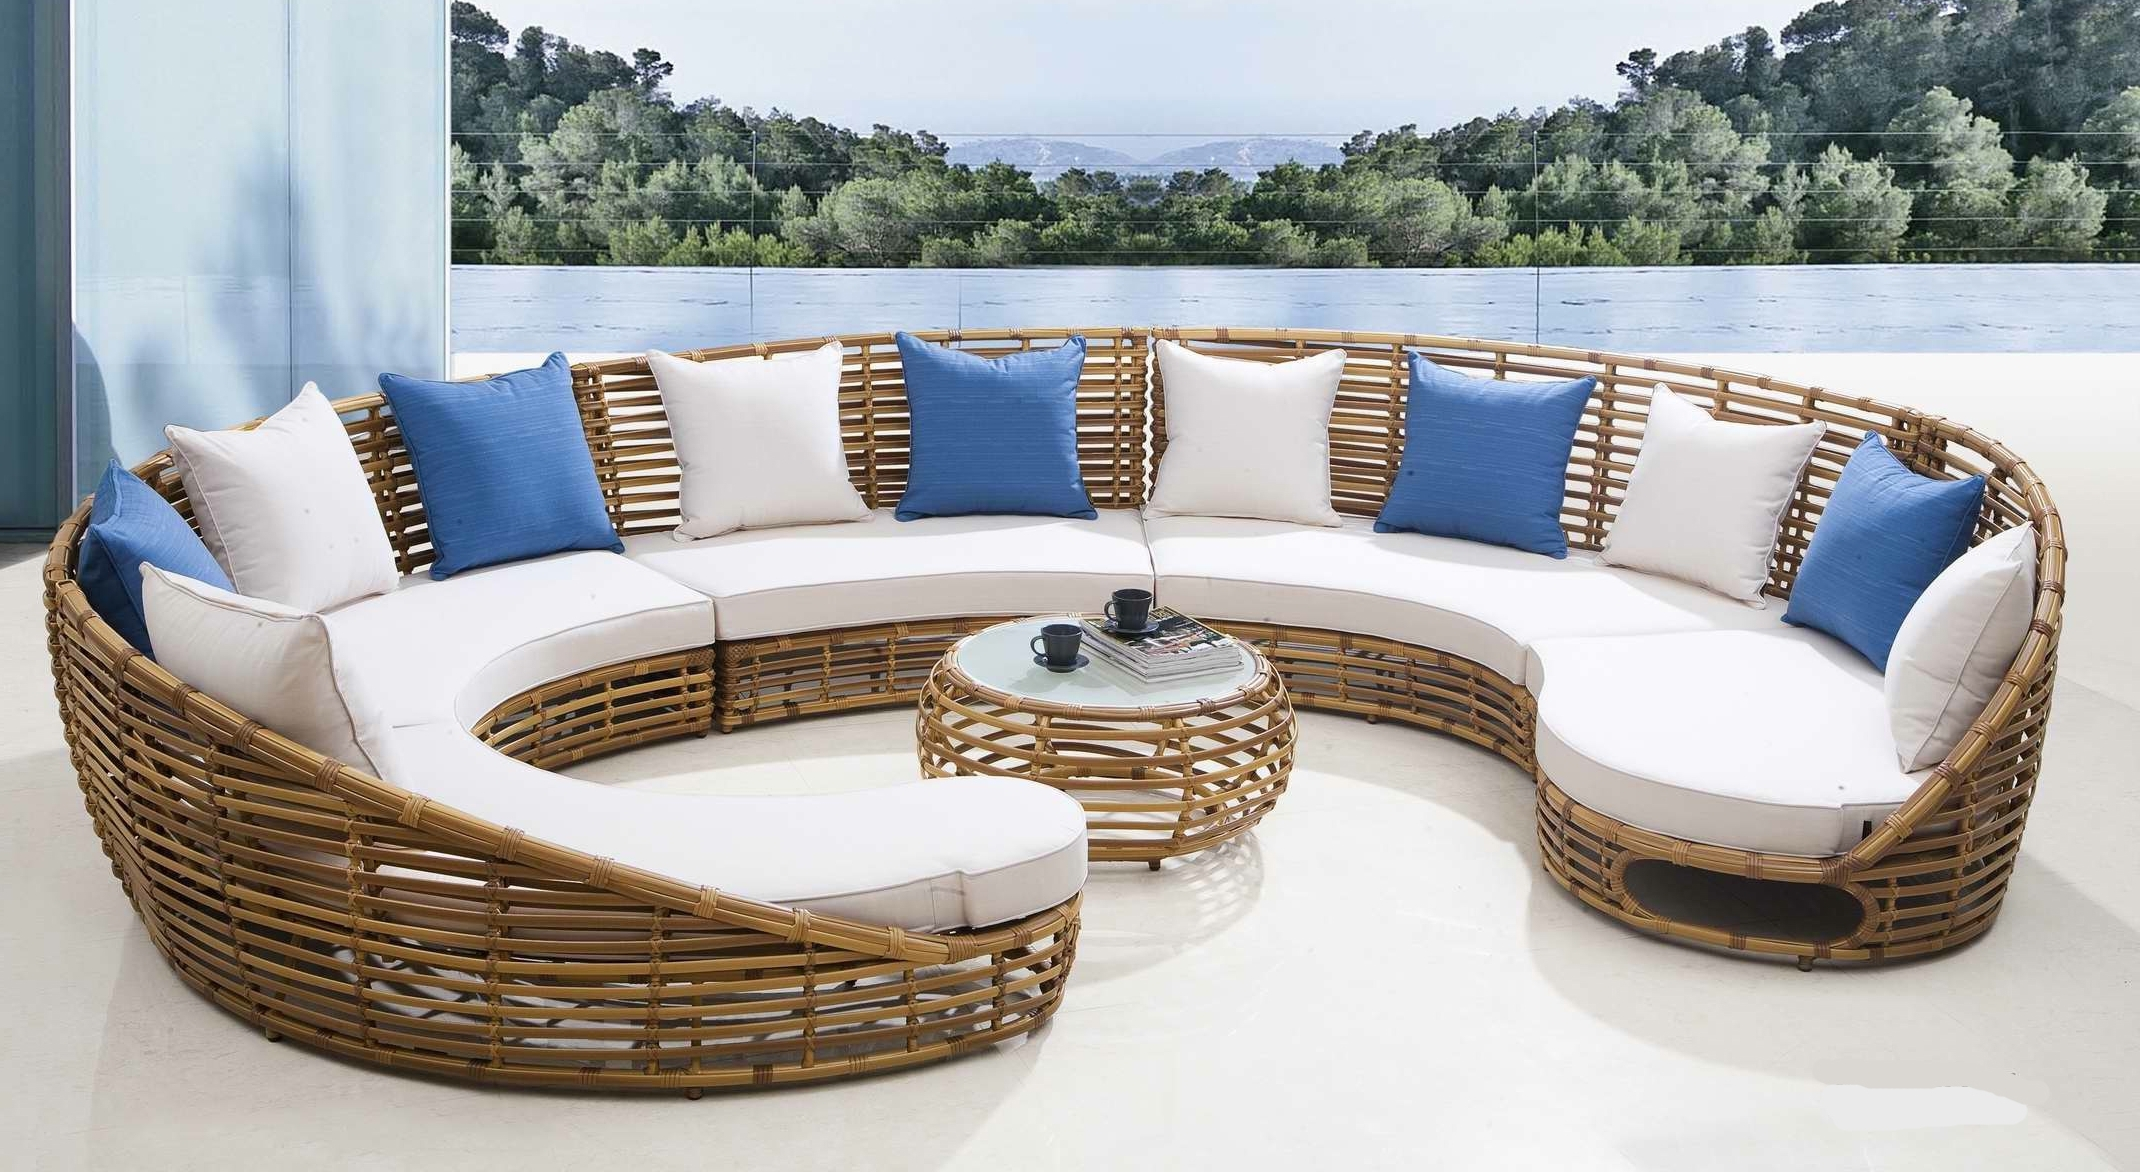 High End Patio Umbrellas Pertaining To Well Known Openairlifestylesllc's Blog (View 5 of 20)